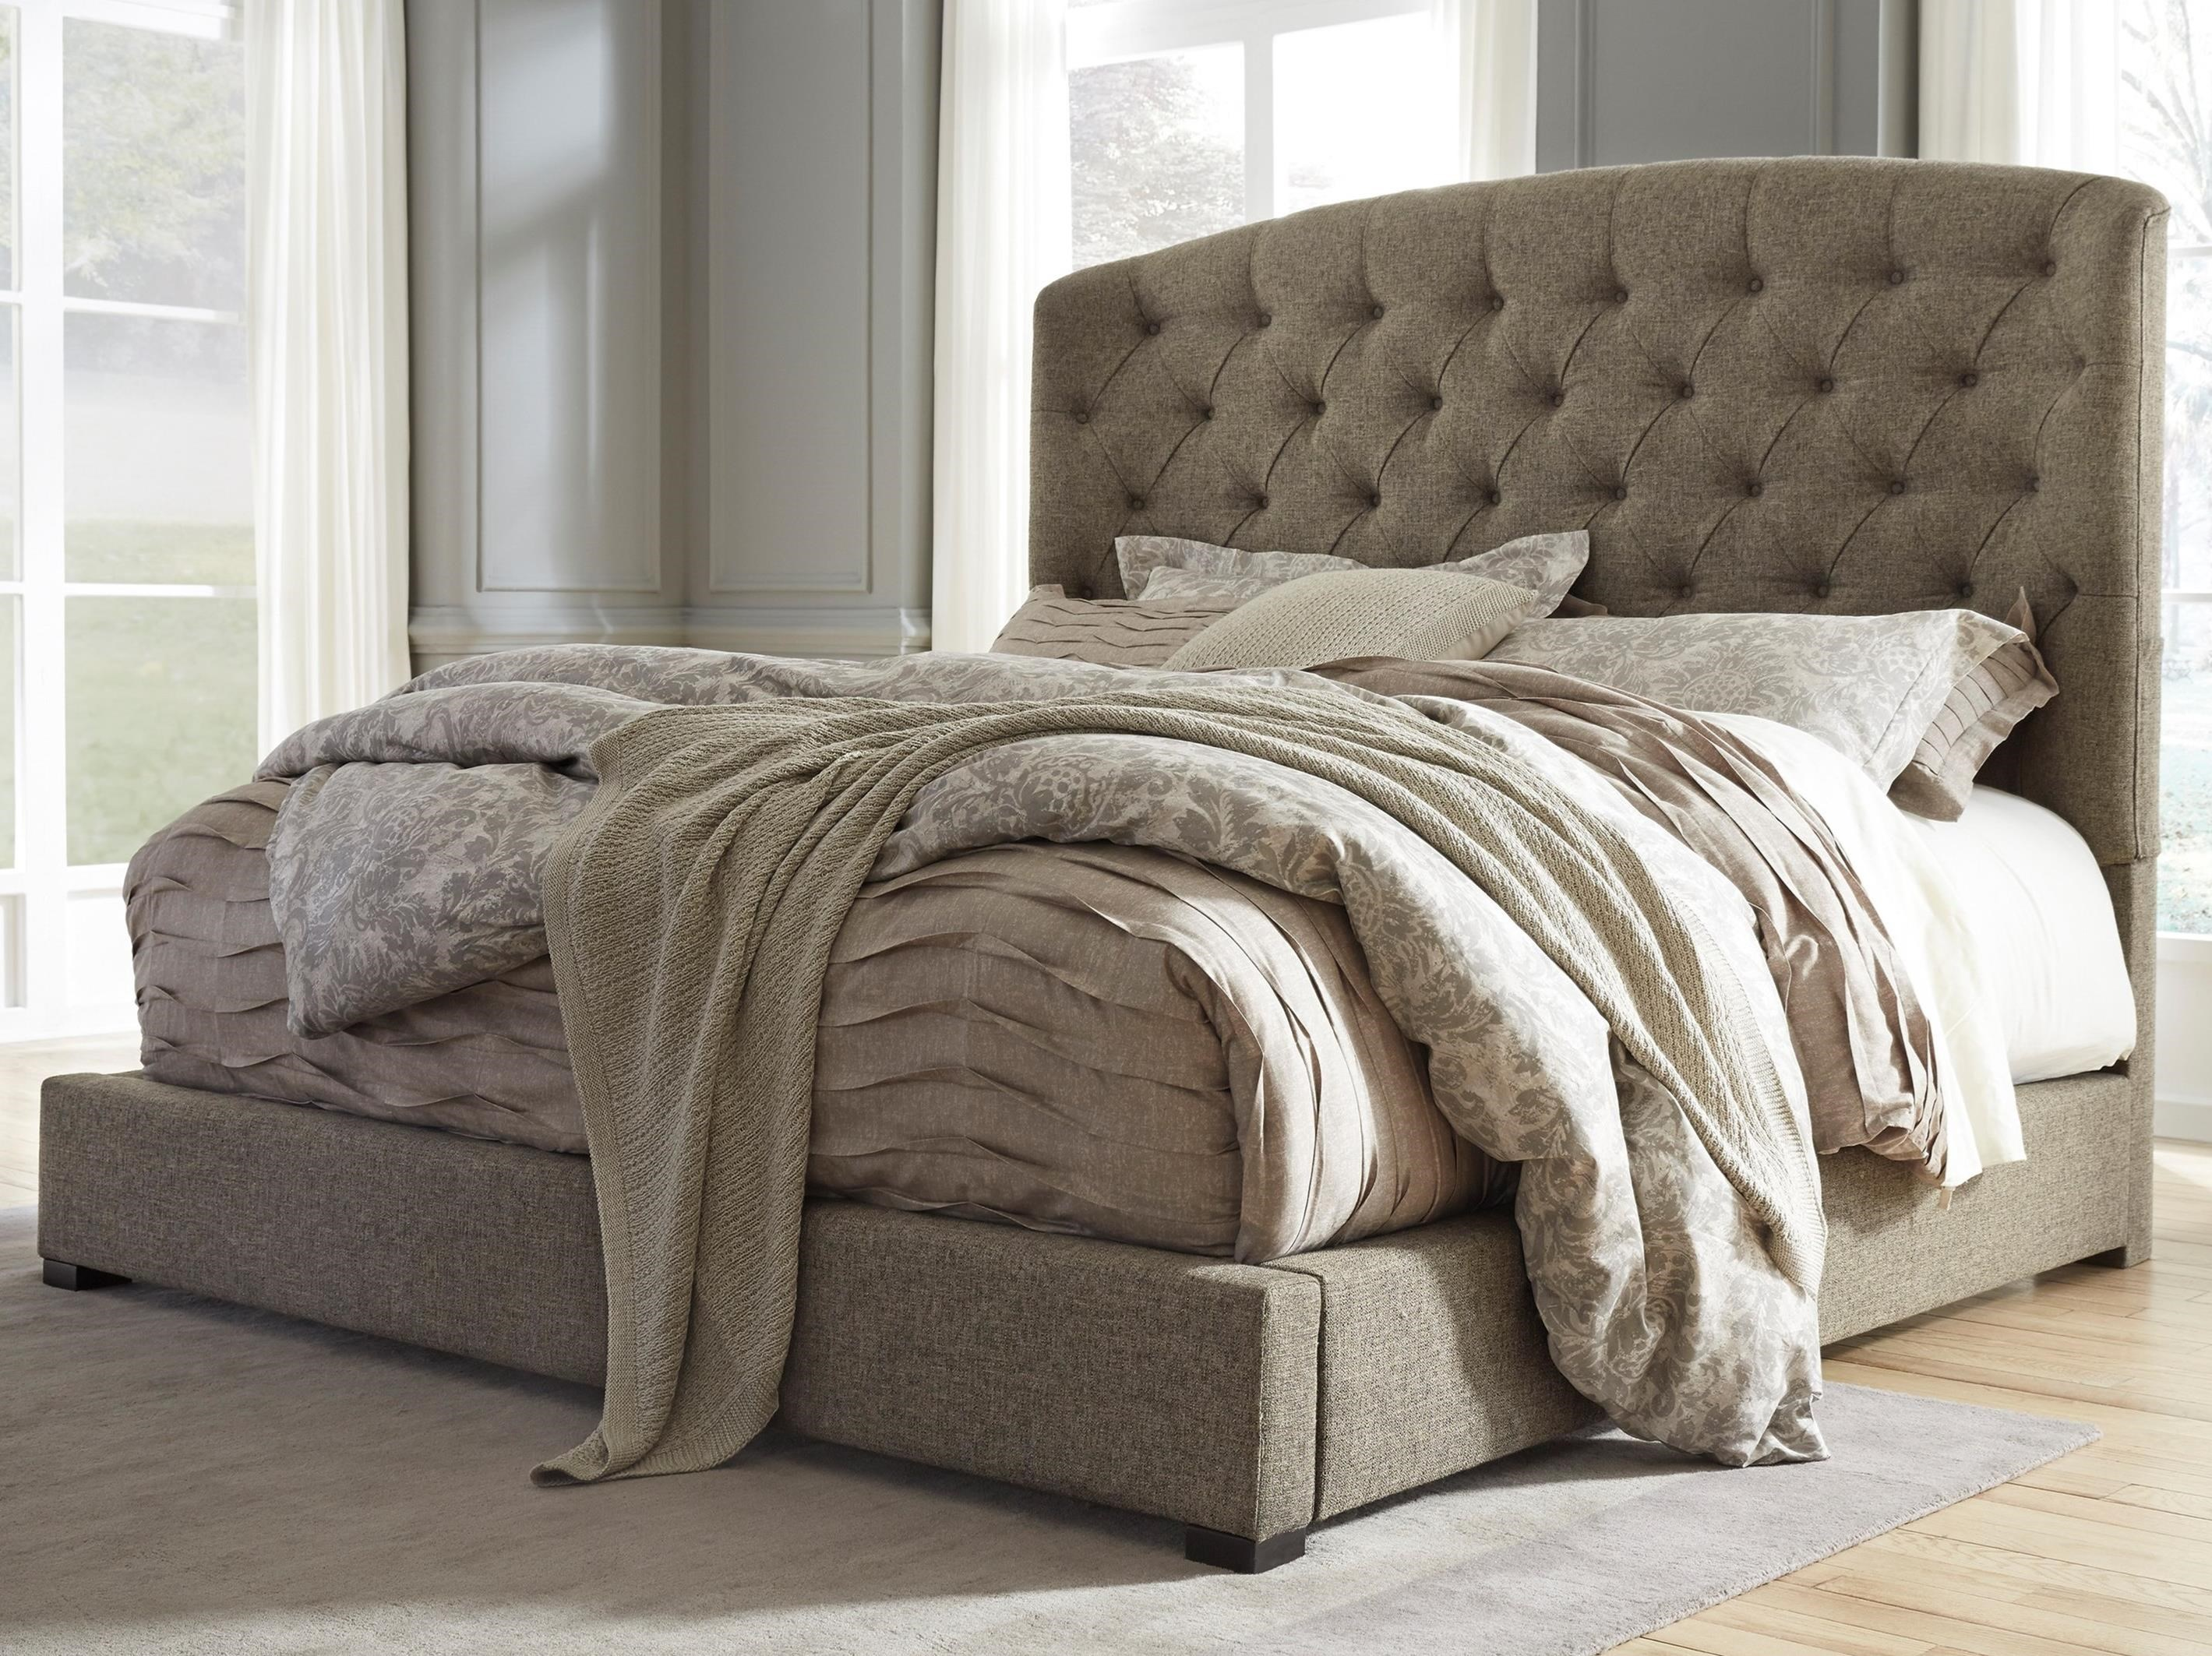 king upholstered bed - King Padded Bedroom Designs